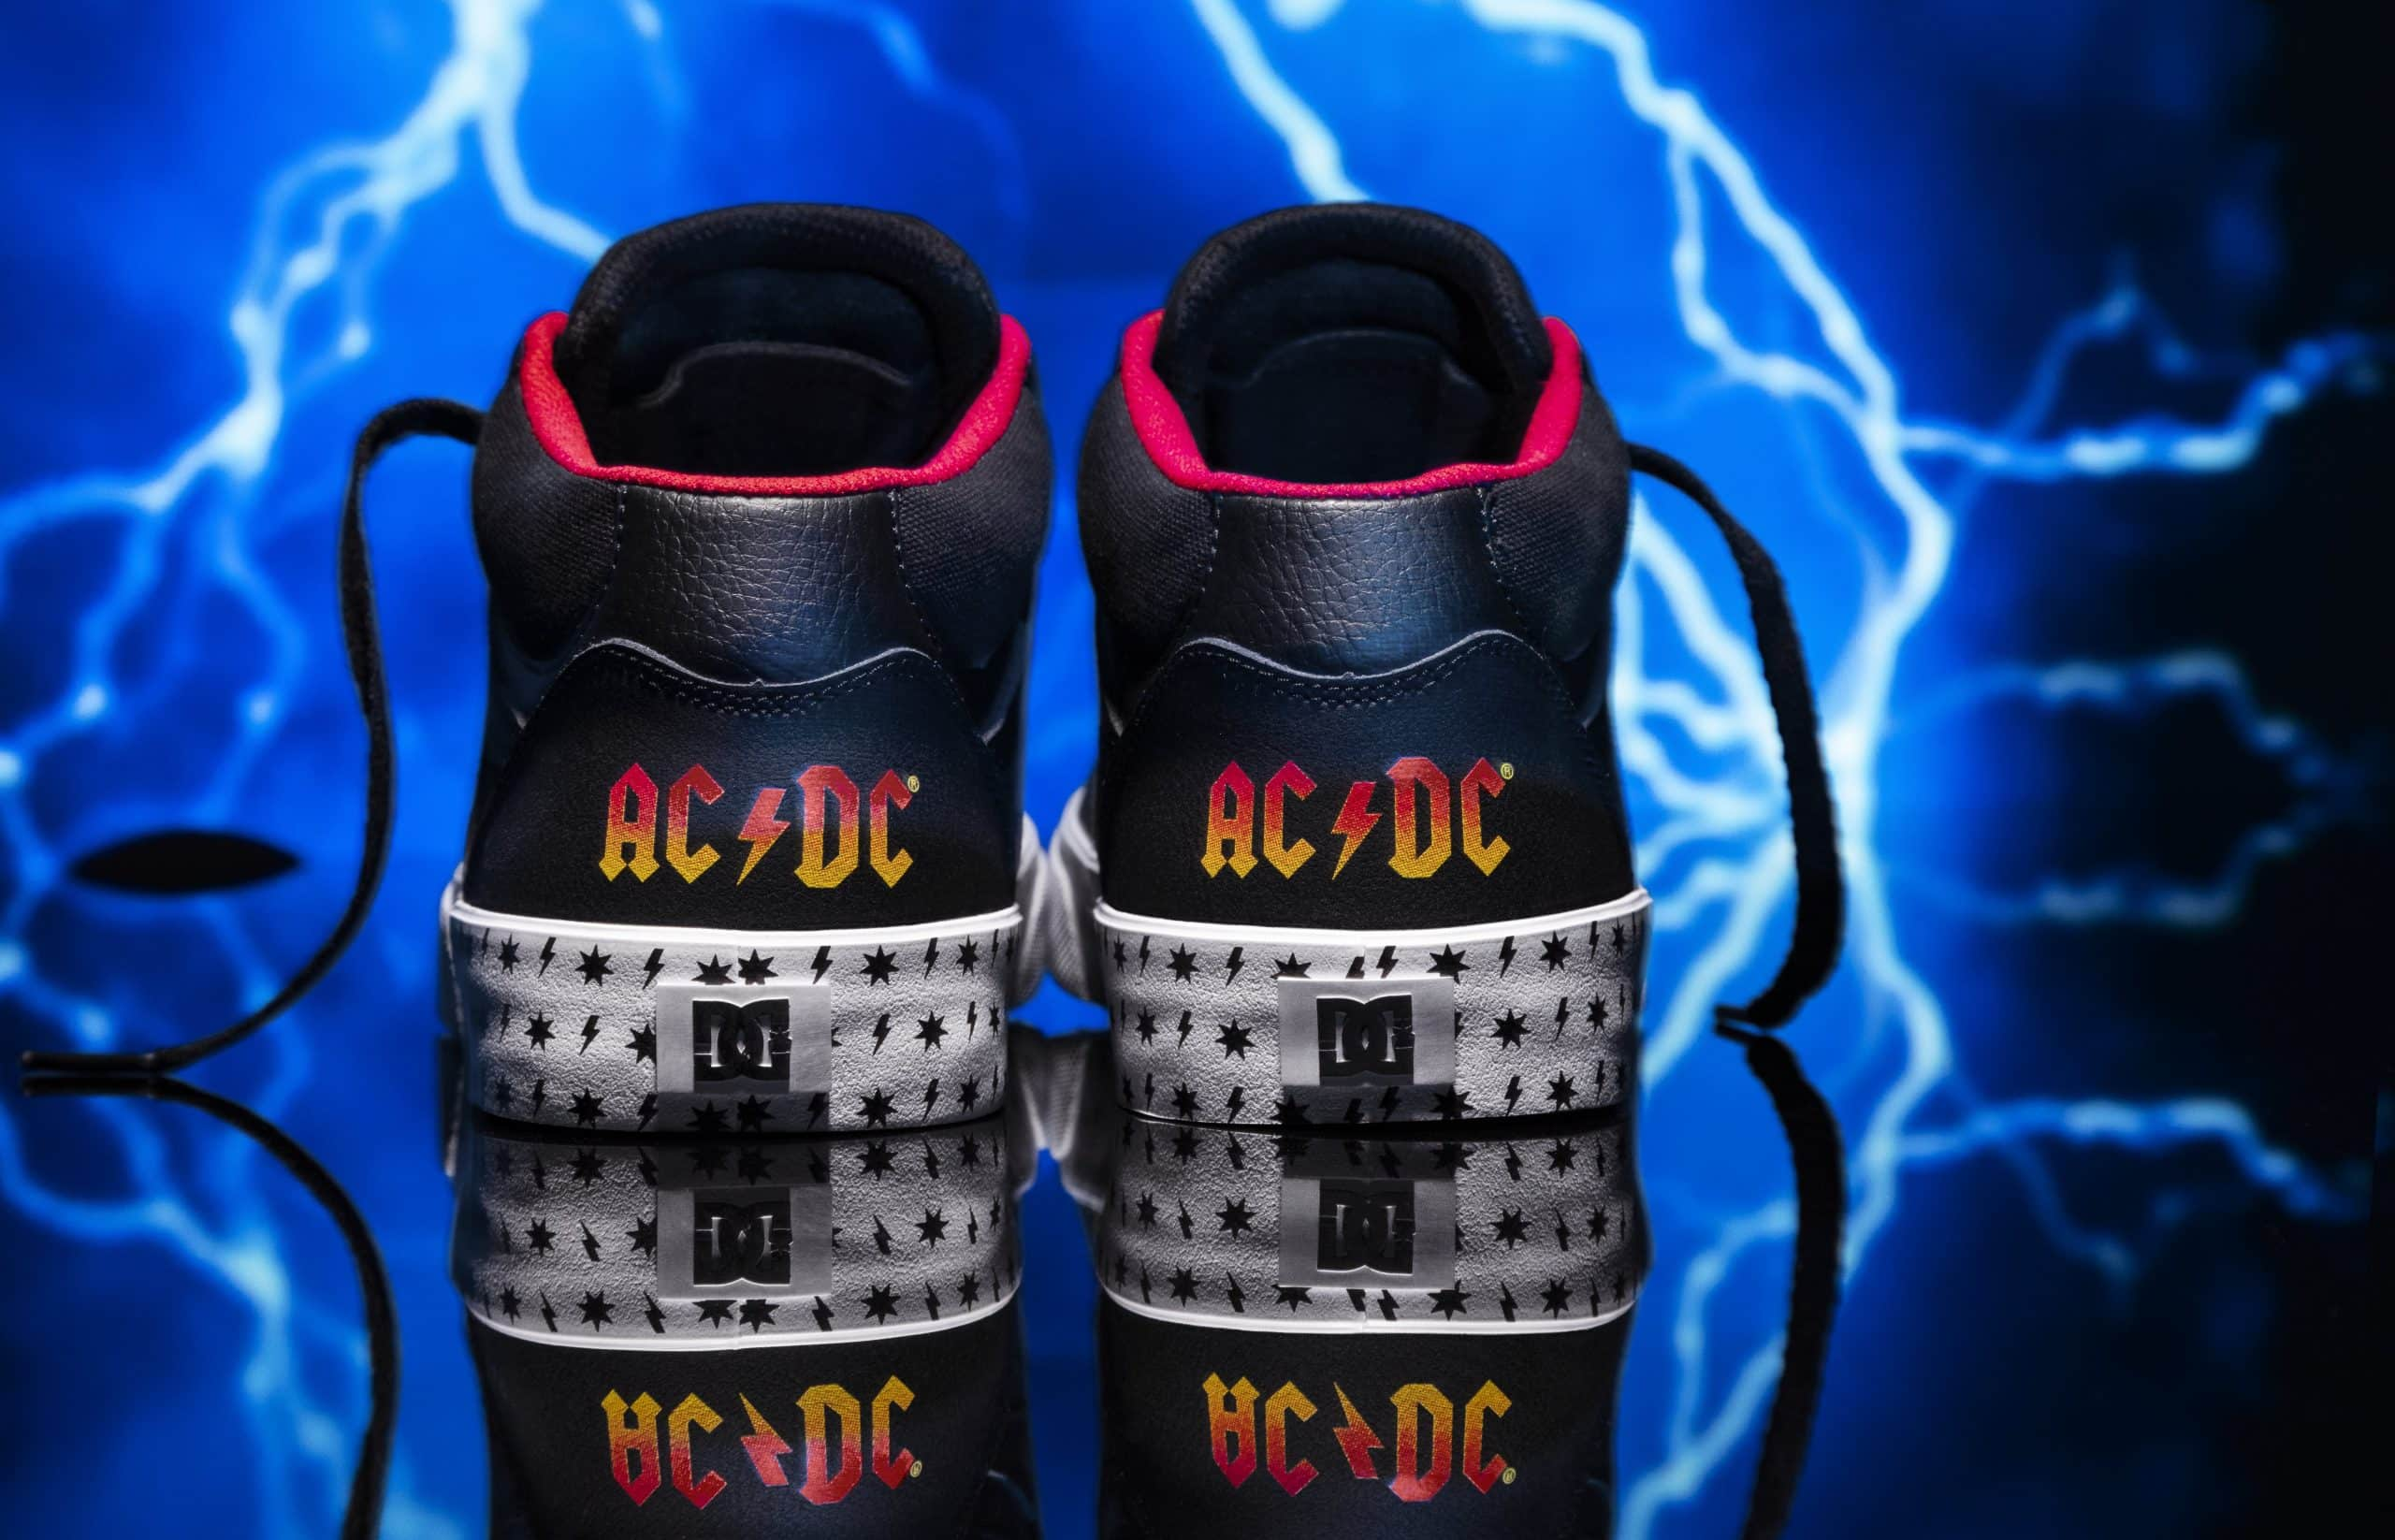 DC-062220-ACDC_Product_Sets_BTY_012351